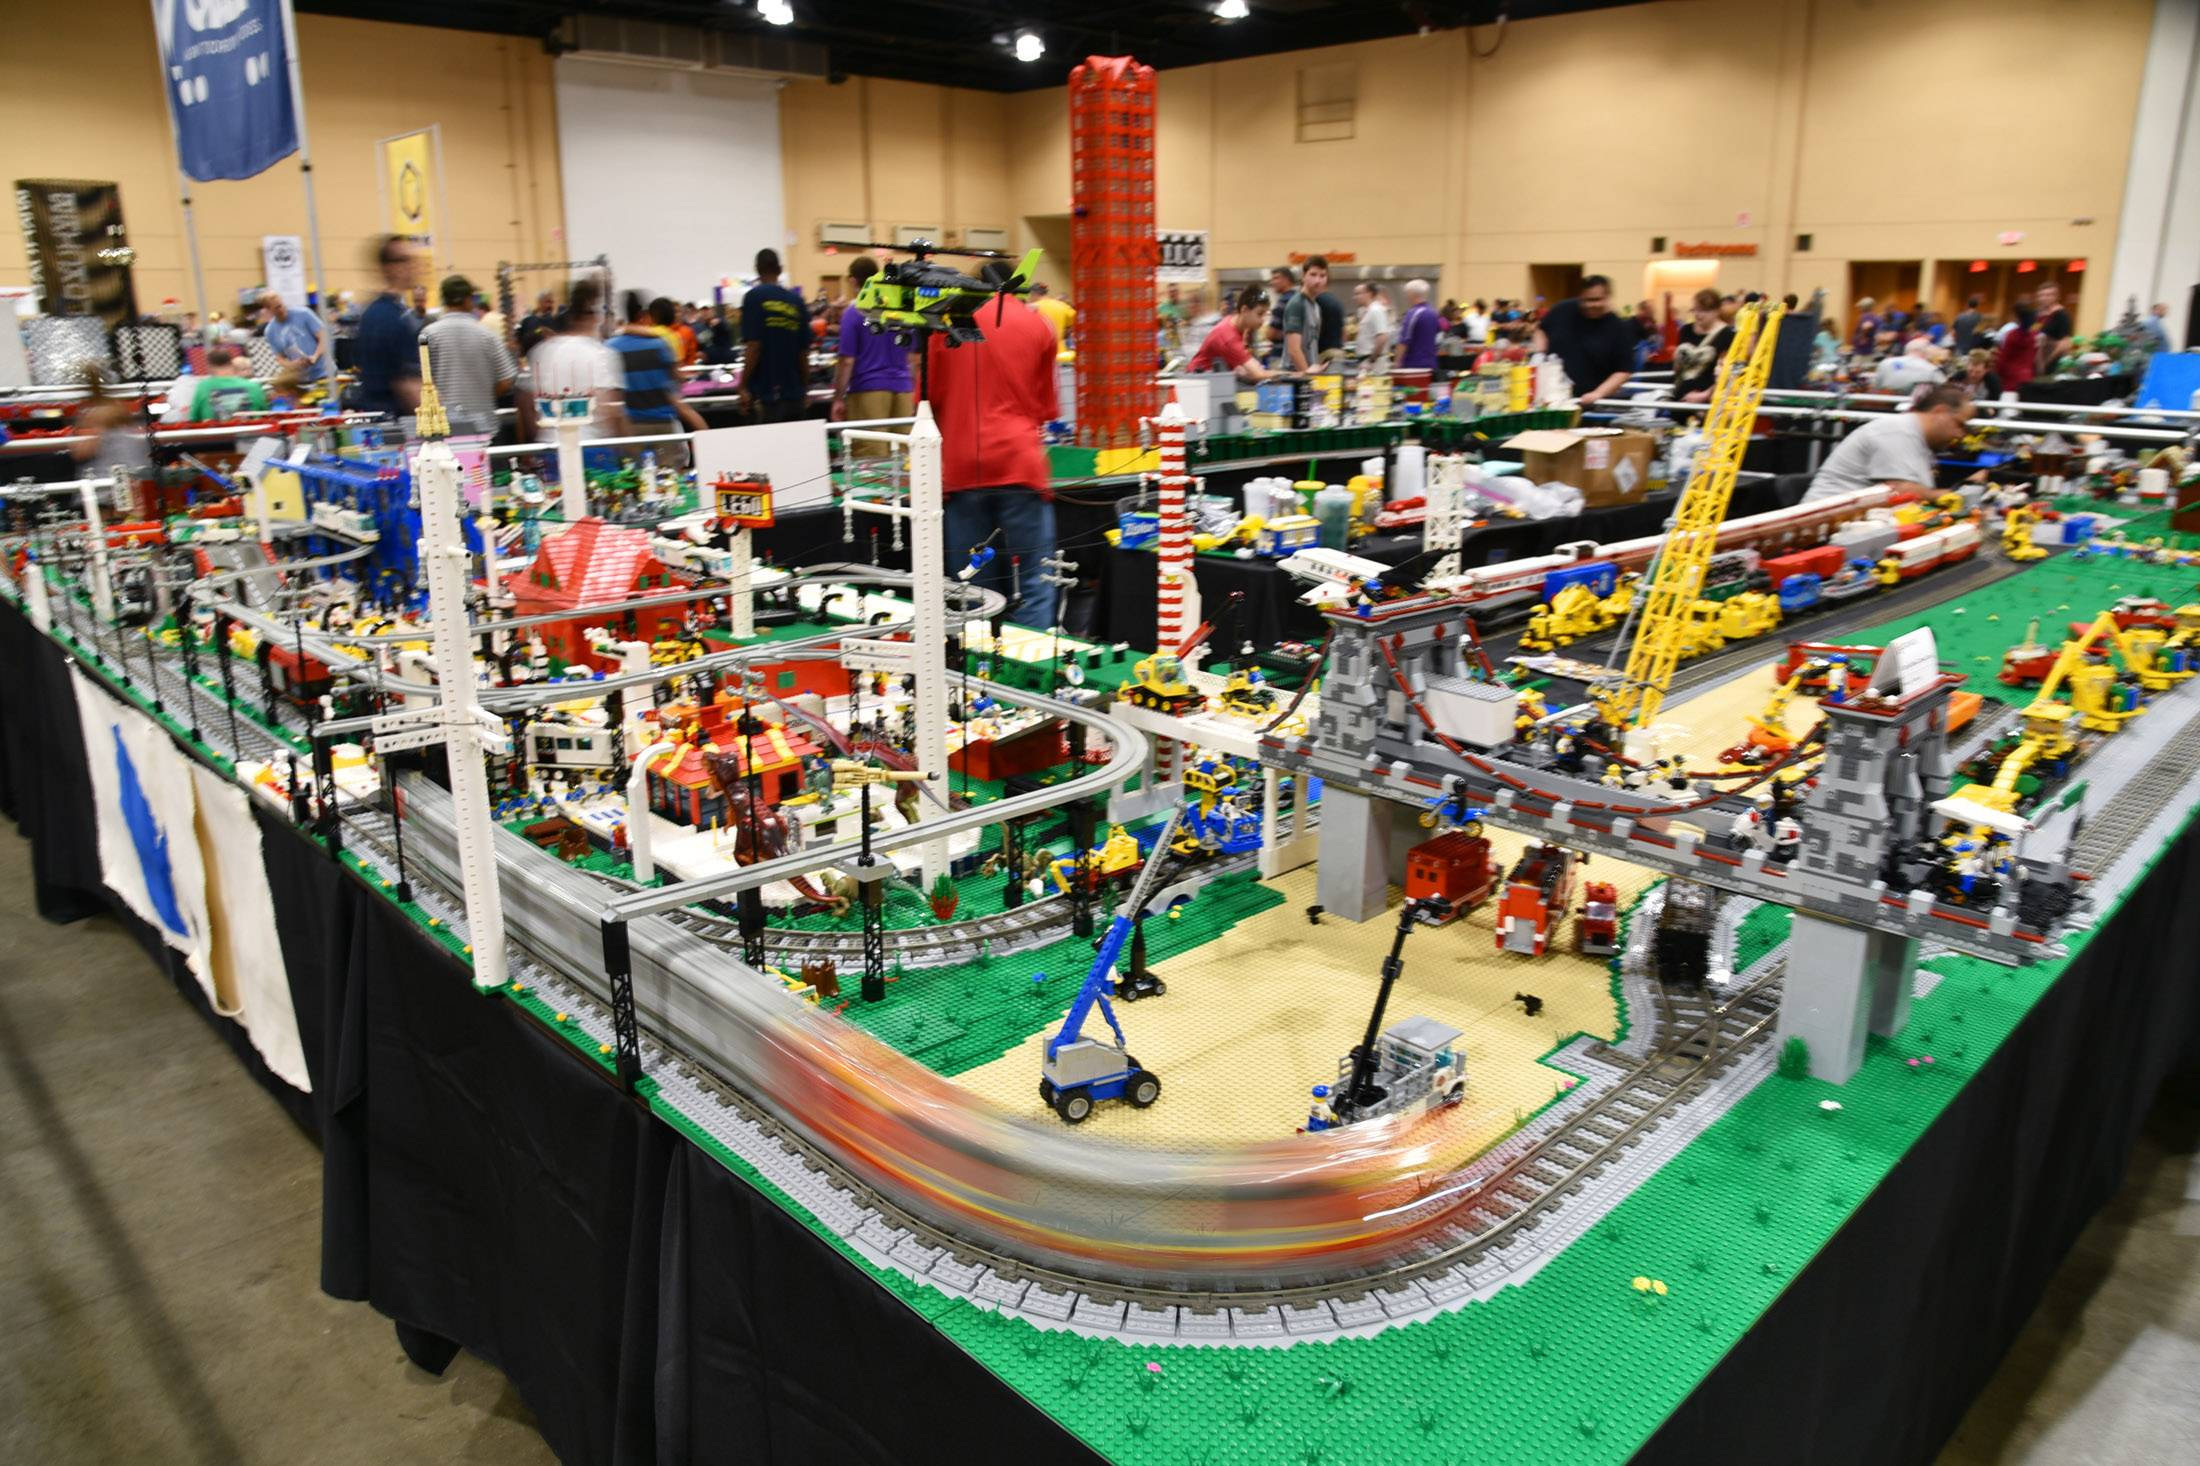 A train follows its track around the corner on a Wisconsin LEGO Users Group setup Sunday, at the 10th annual Brickworld Chicago LEGO Exposition at the Schaumburg Renaissance Convention Center.